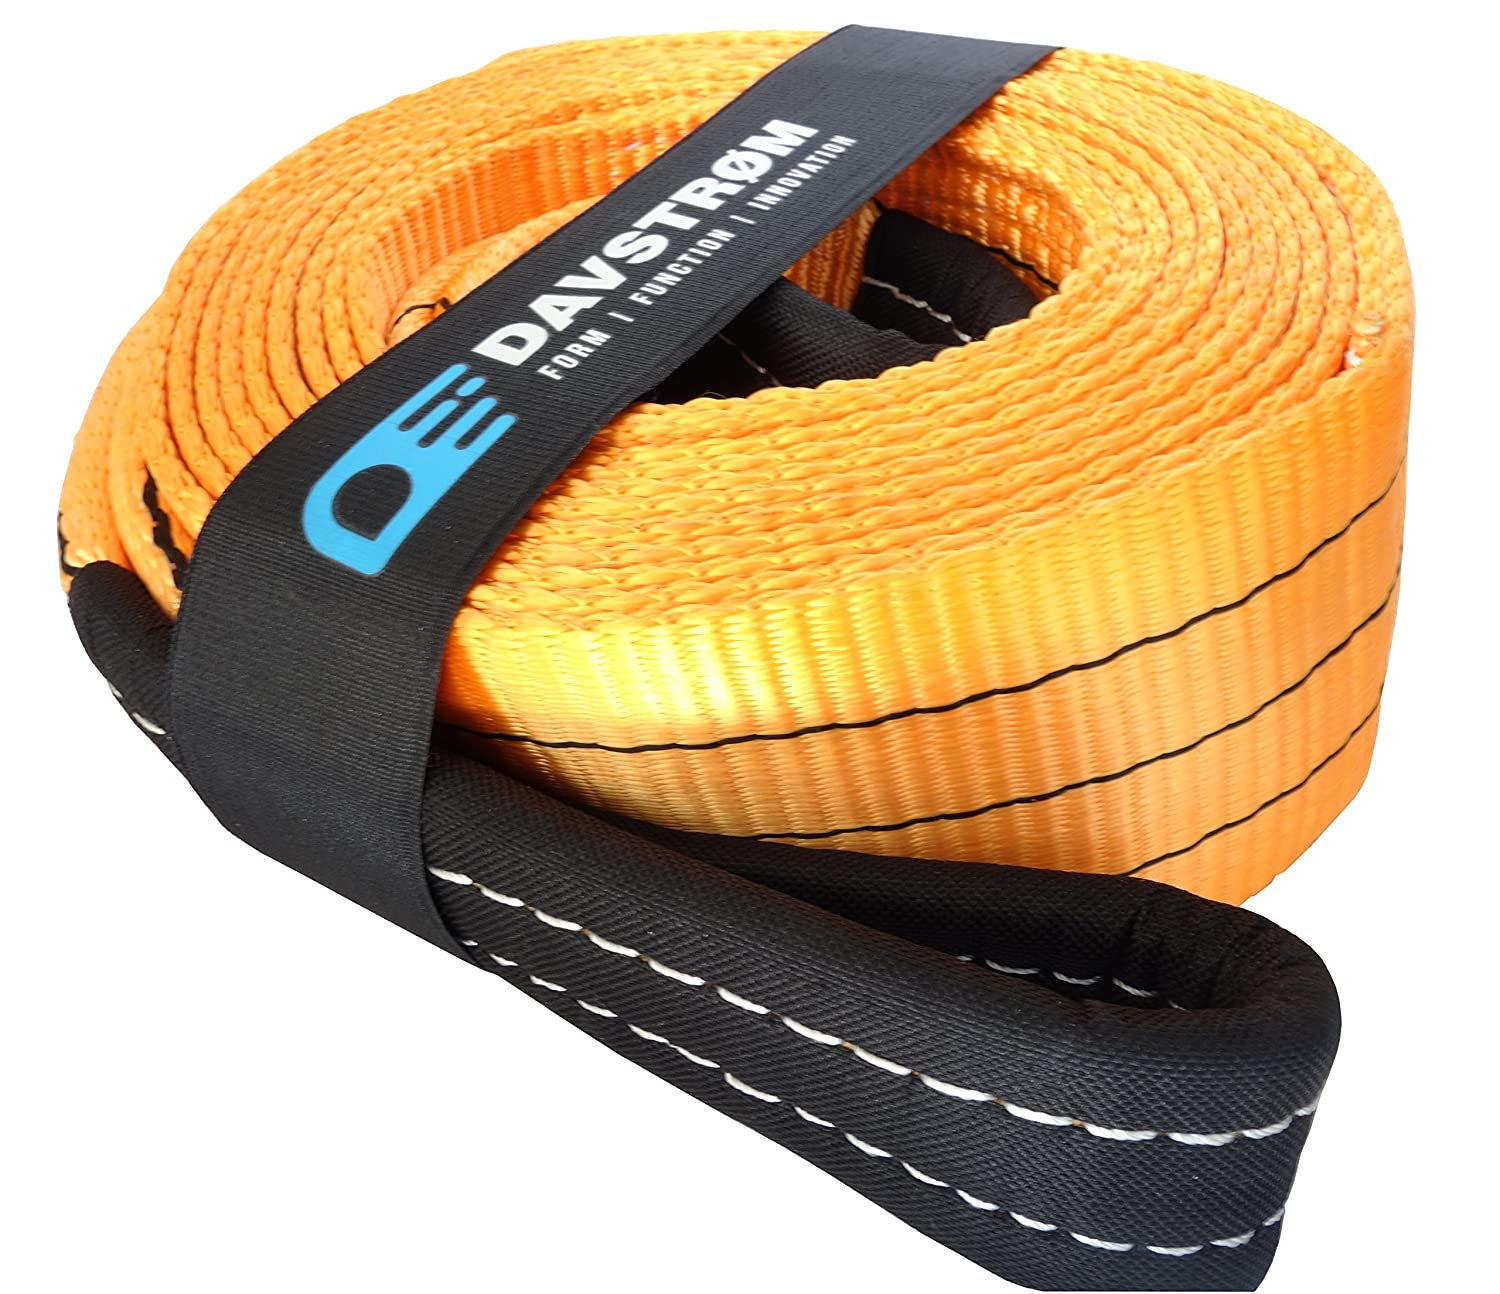 Tow Strap Heavy Duty Recovery - 35,000lbs [17.5 US TONS] Davstrom Premium Towing Rope Alternative, 20 Feet x 3.5 Inches, Reinforced Connection Loops. On-road Off-road, Winch Retrieval, Mud, Snow, Sand